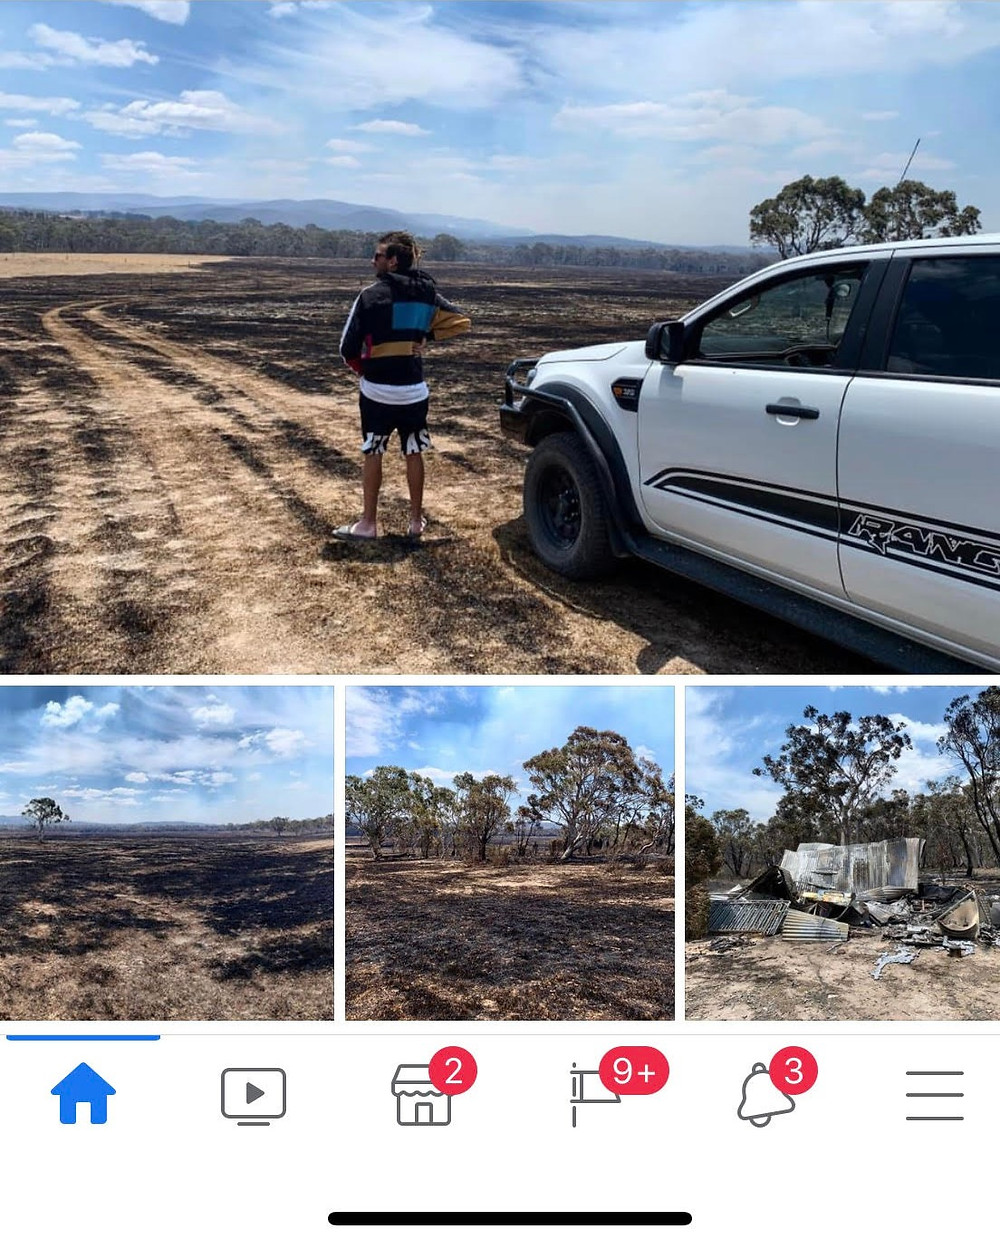 There are four images. The top image is a man with his back to the camera, looking out over burned out land. The second and third image show burned out farmland. The final image shows a structure that has burned to the ground.